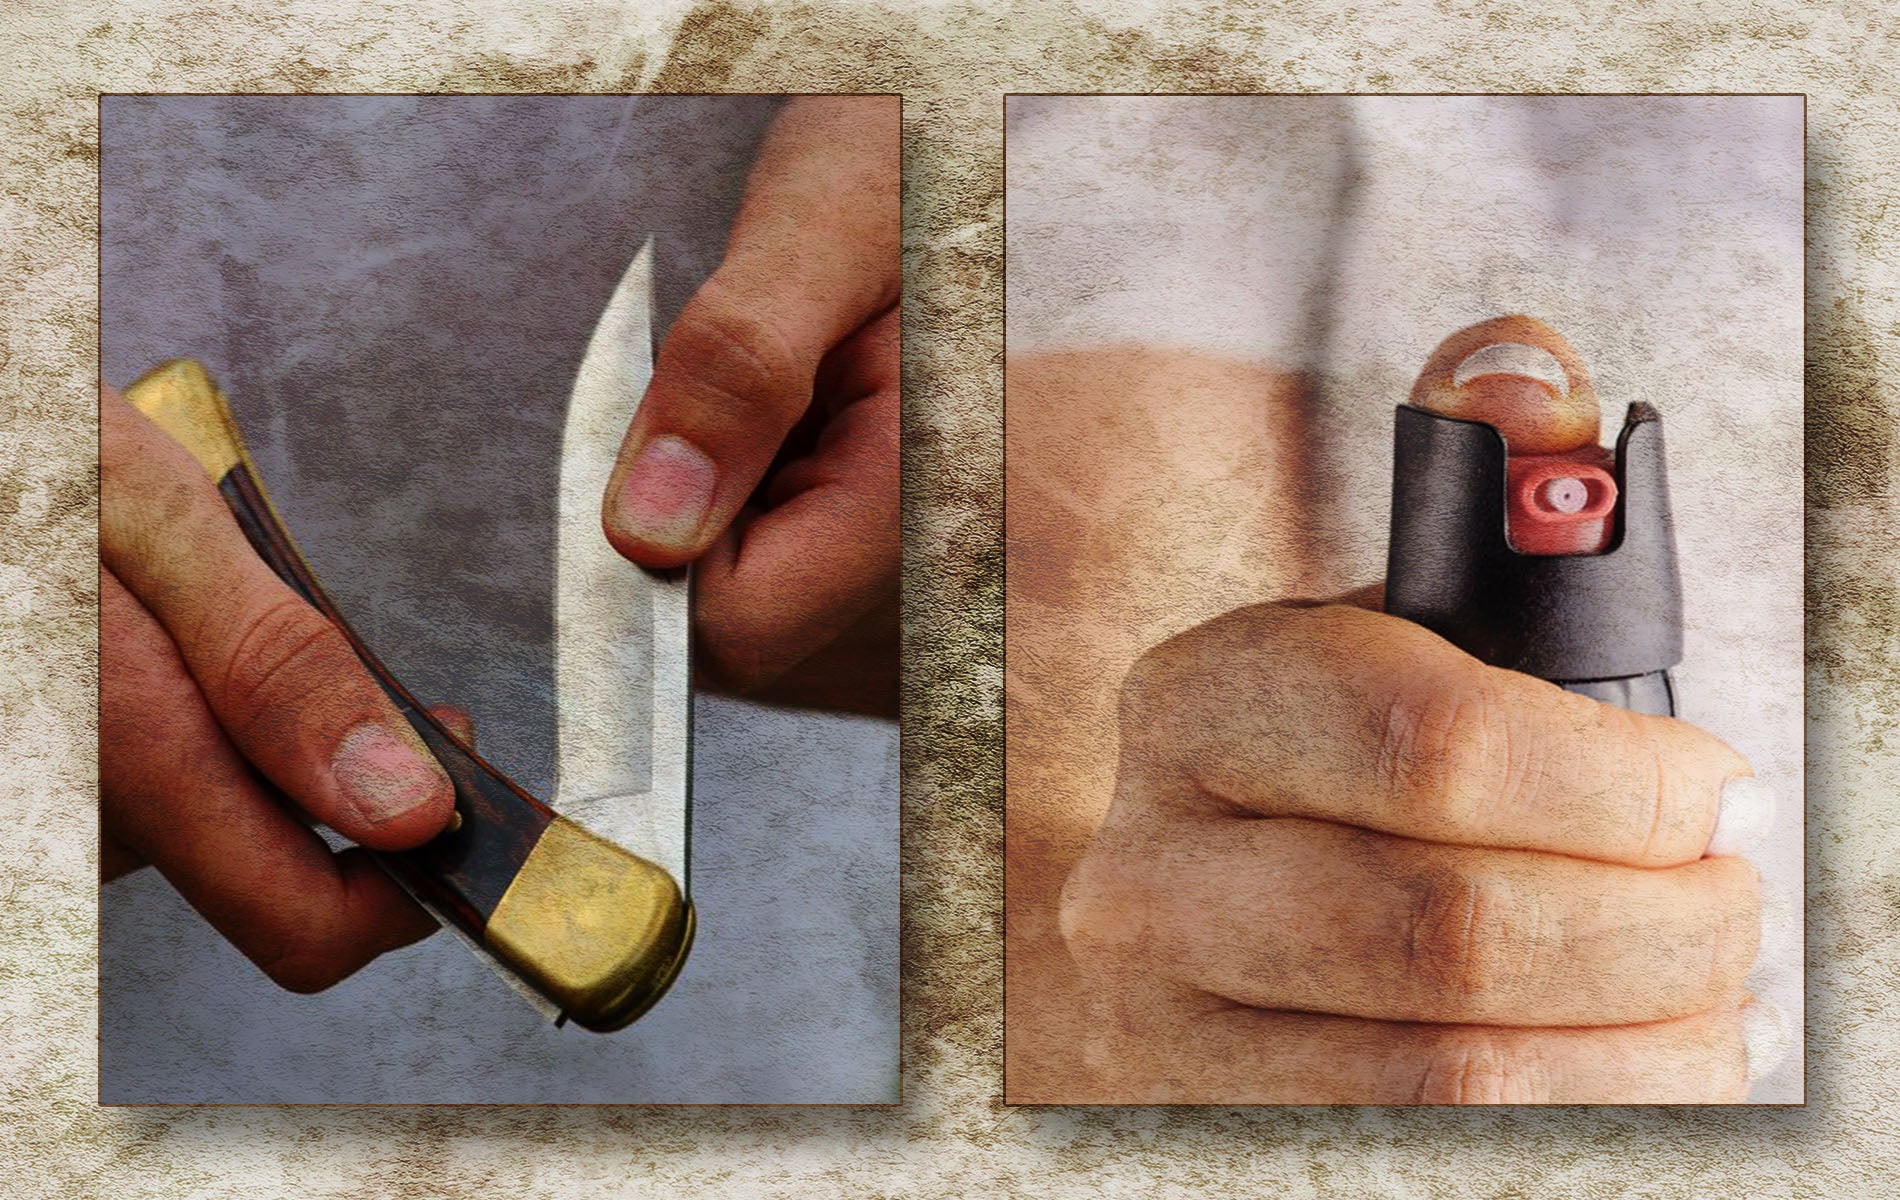 Do You Prefer a Pocket Knife or Pepper Spray?